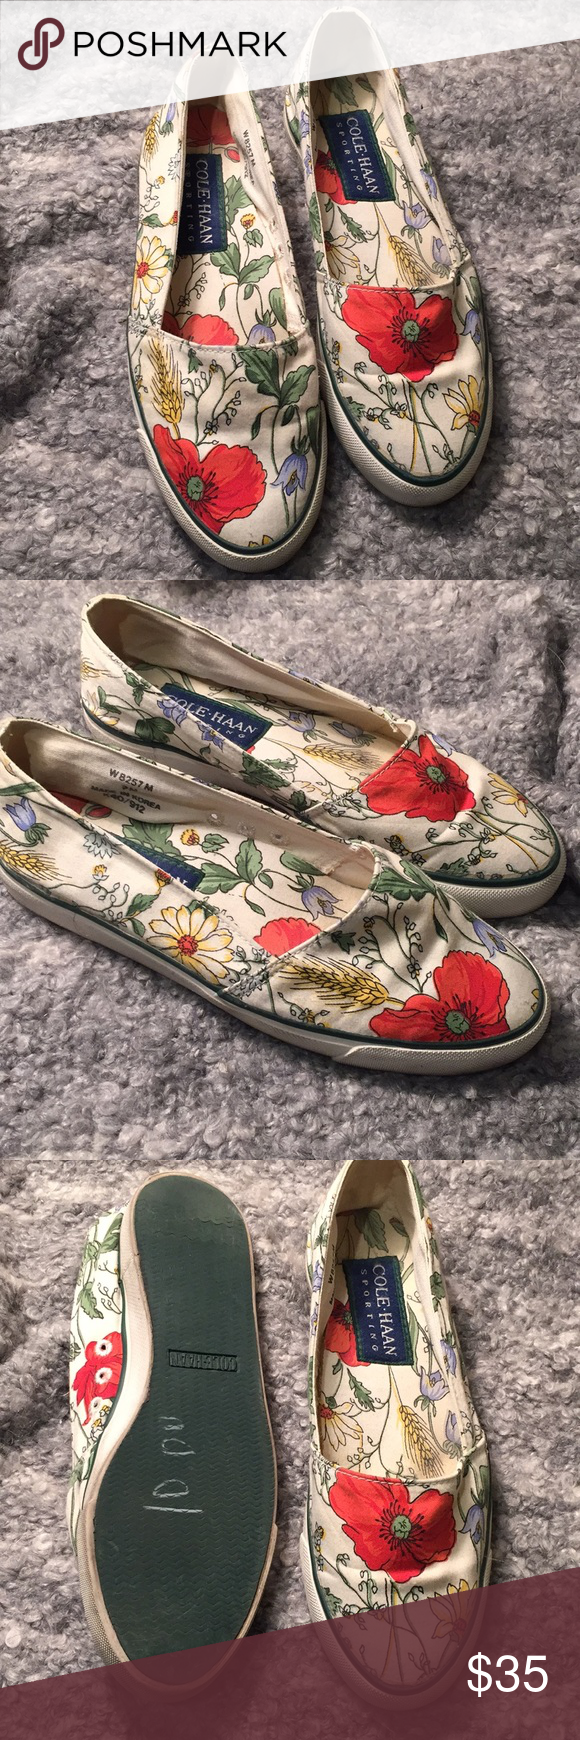 e00f5878533 Cole Haan Floral Loafer Flats Lovely shoes in a fun print. Decent  condition. They